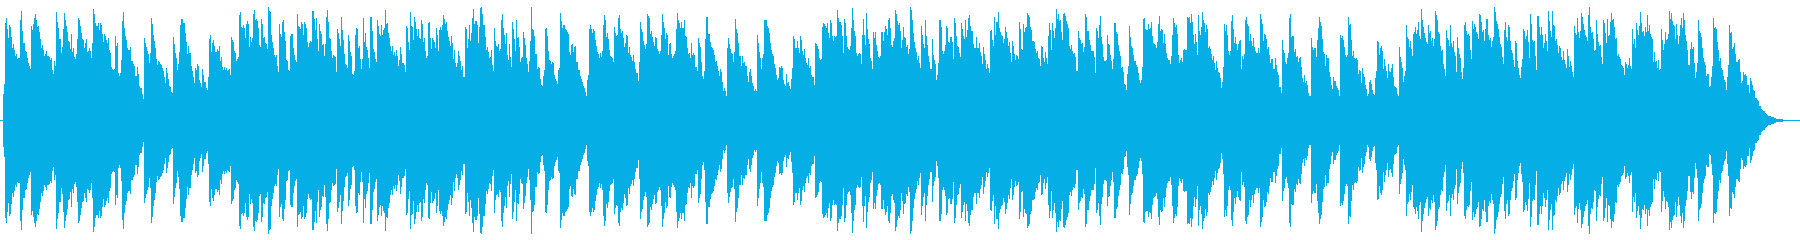 A piece of music box's reproduced waveform